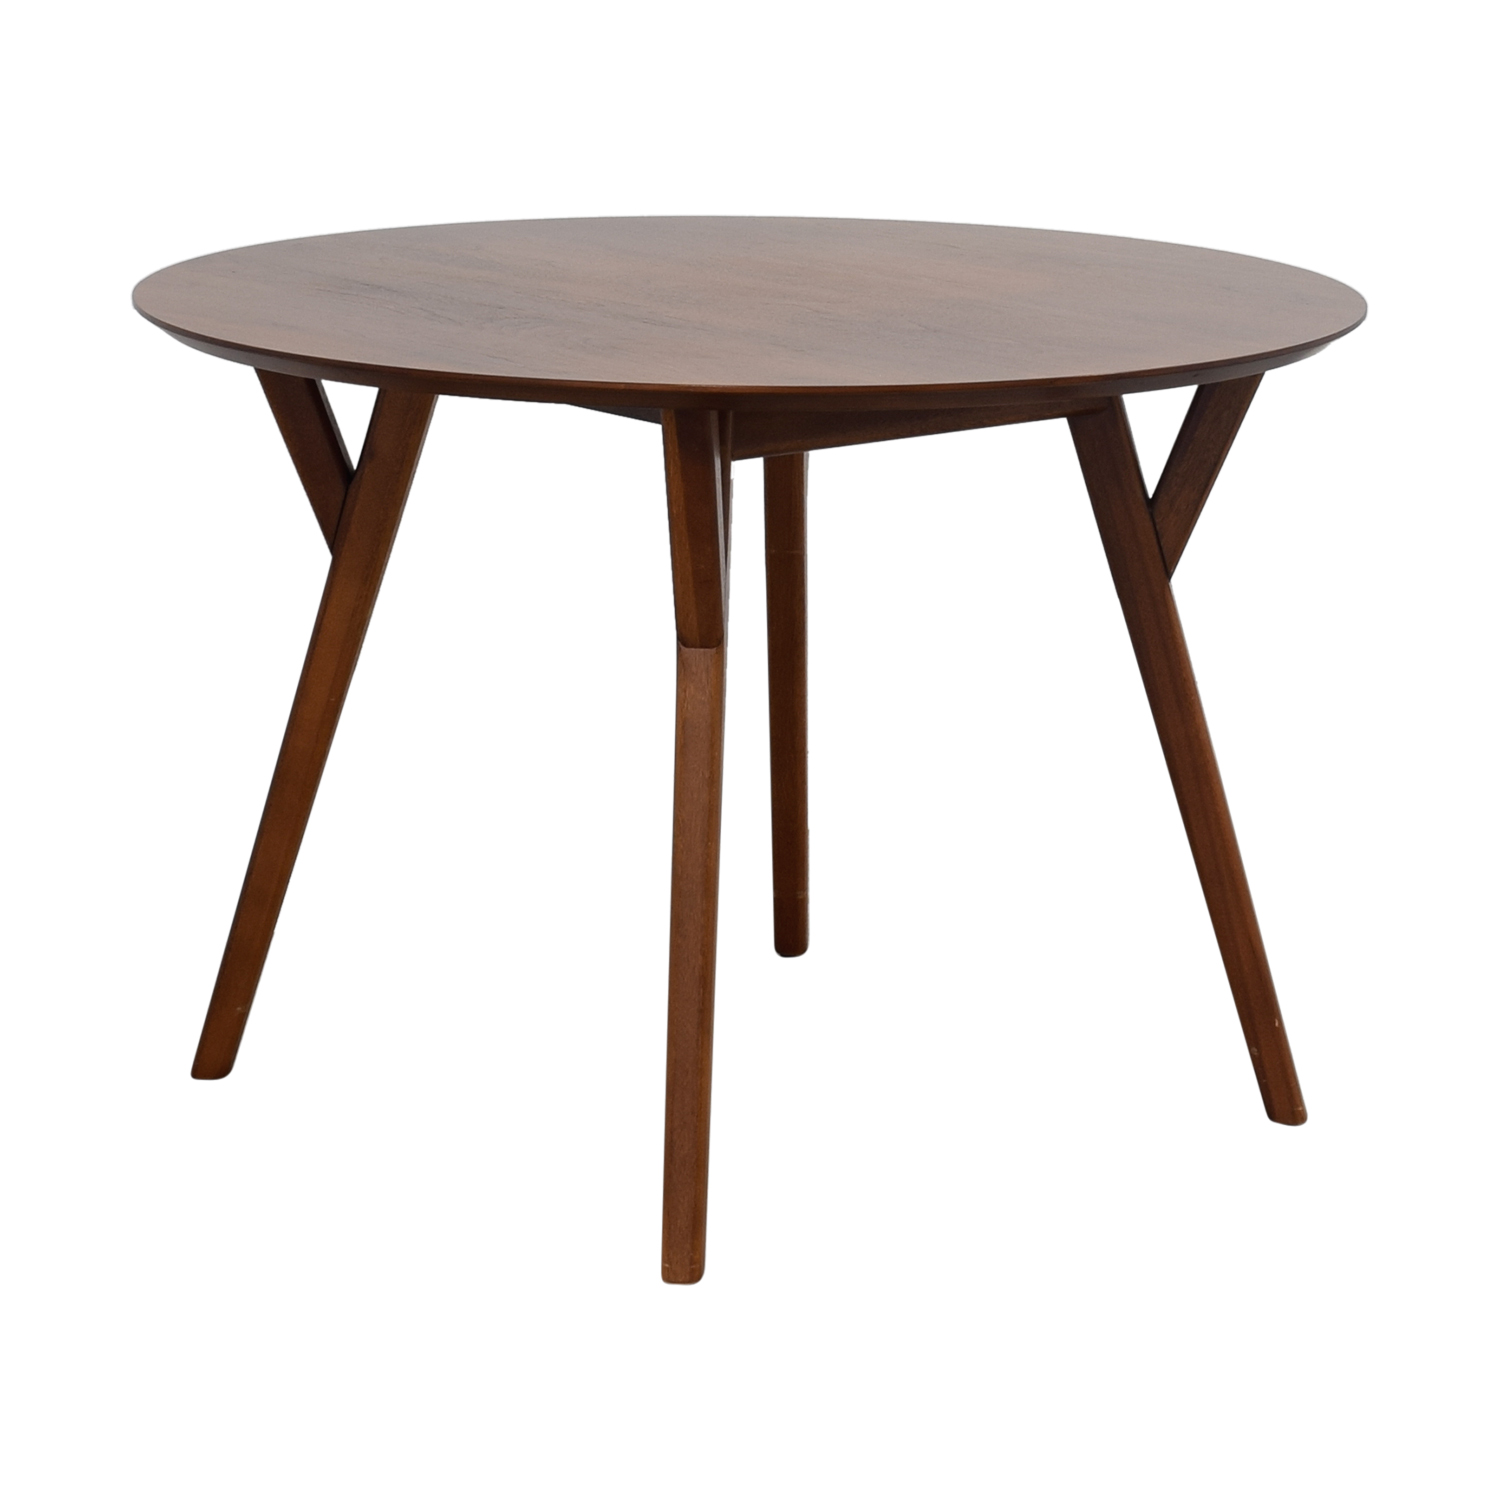 39% OFF - West Elm West Elm Mid-Century Walnut Round Dining Table / Tables